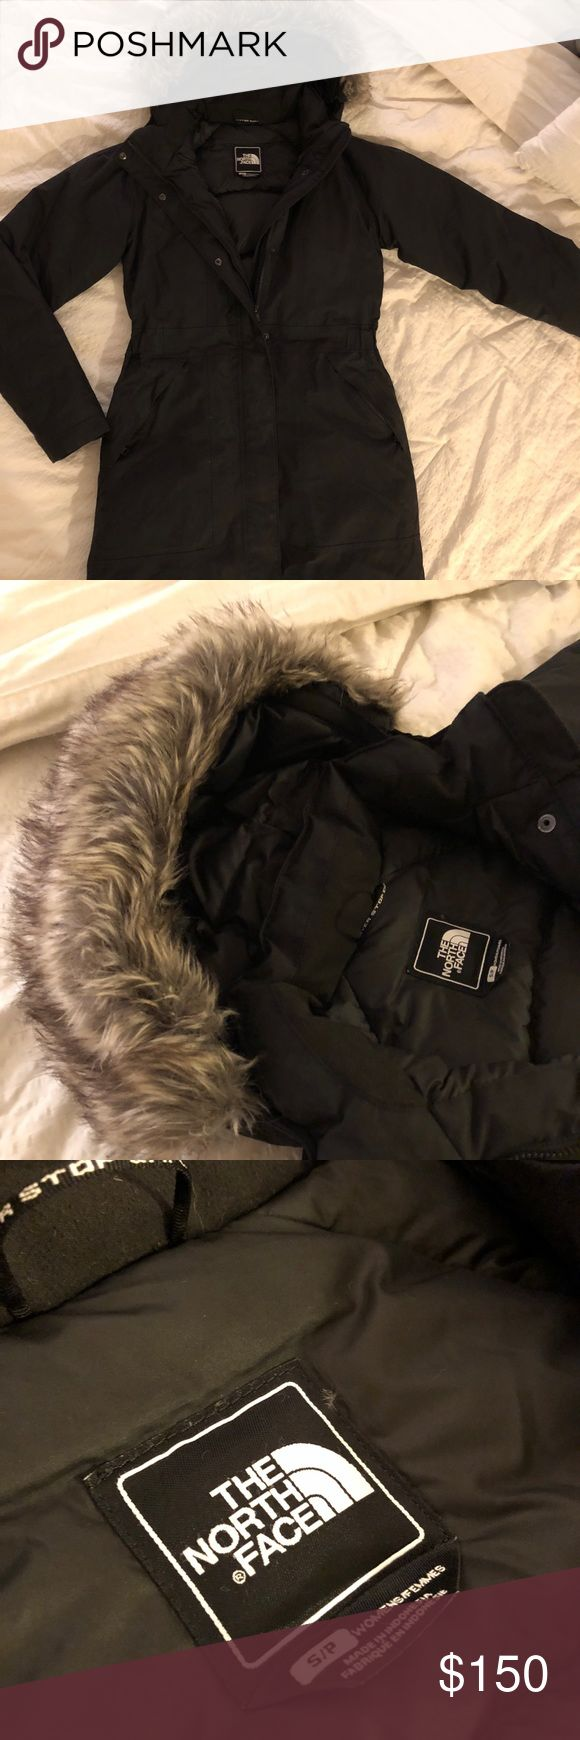 "The North Face: Arctic Parka Long black down insulated parka - form fitting - deflects rain & snow. I am 5'9"" and it falls mid thigh. Wearing the jacket in my profile picture! The North Face Jackets & Coats Puffers"